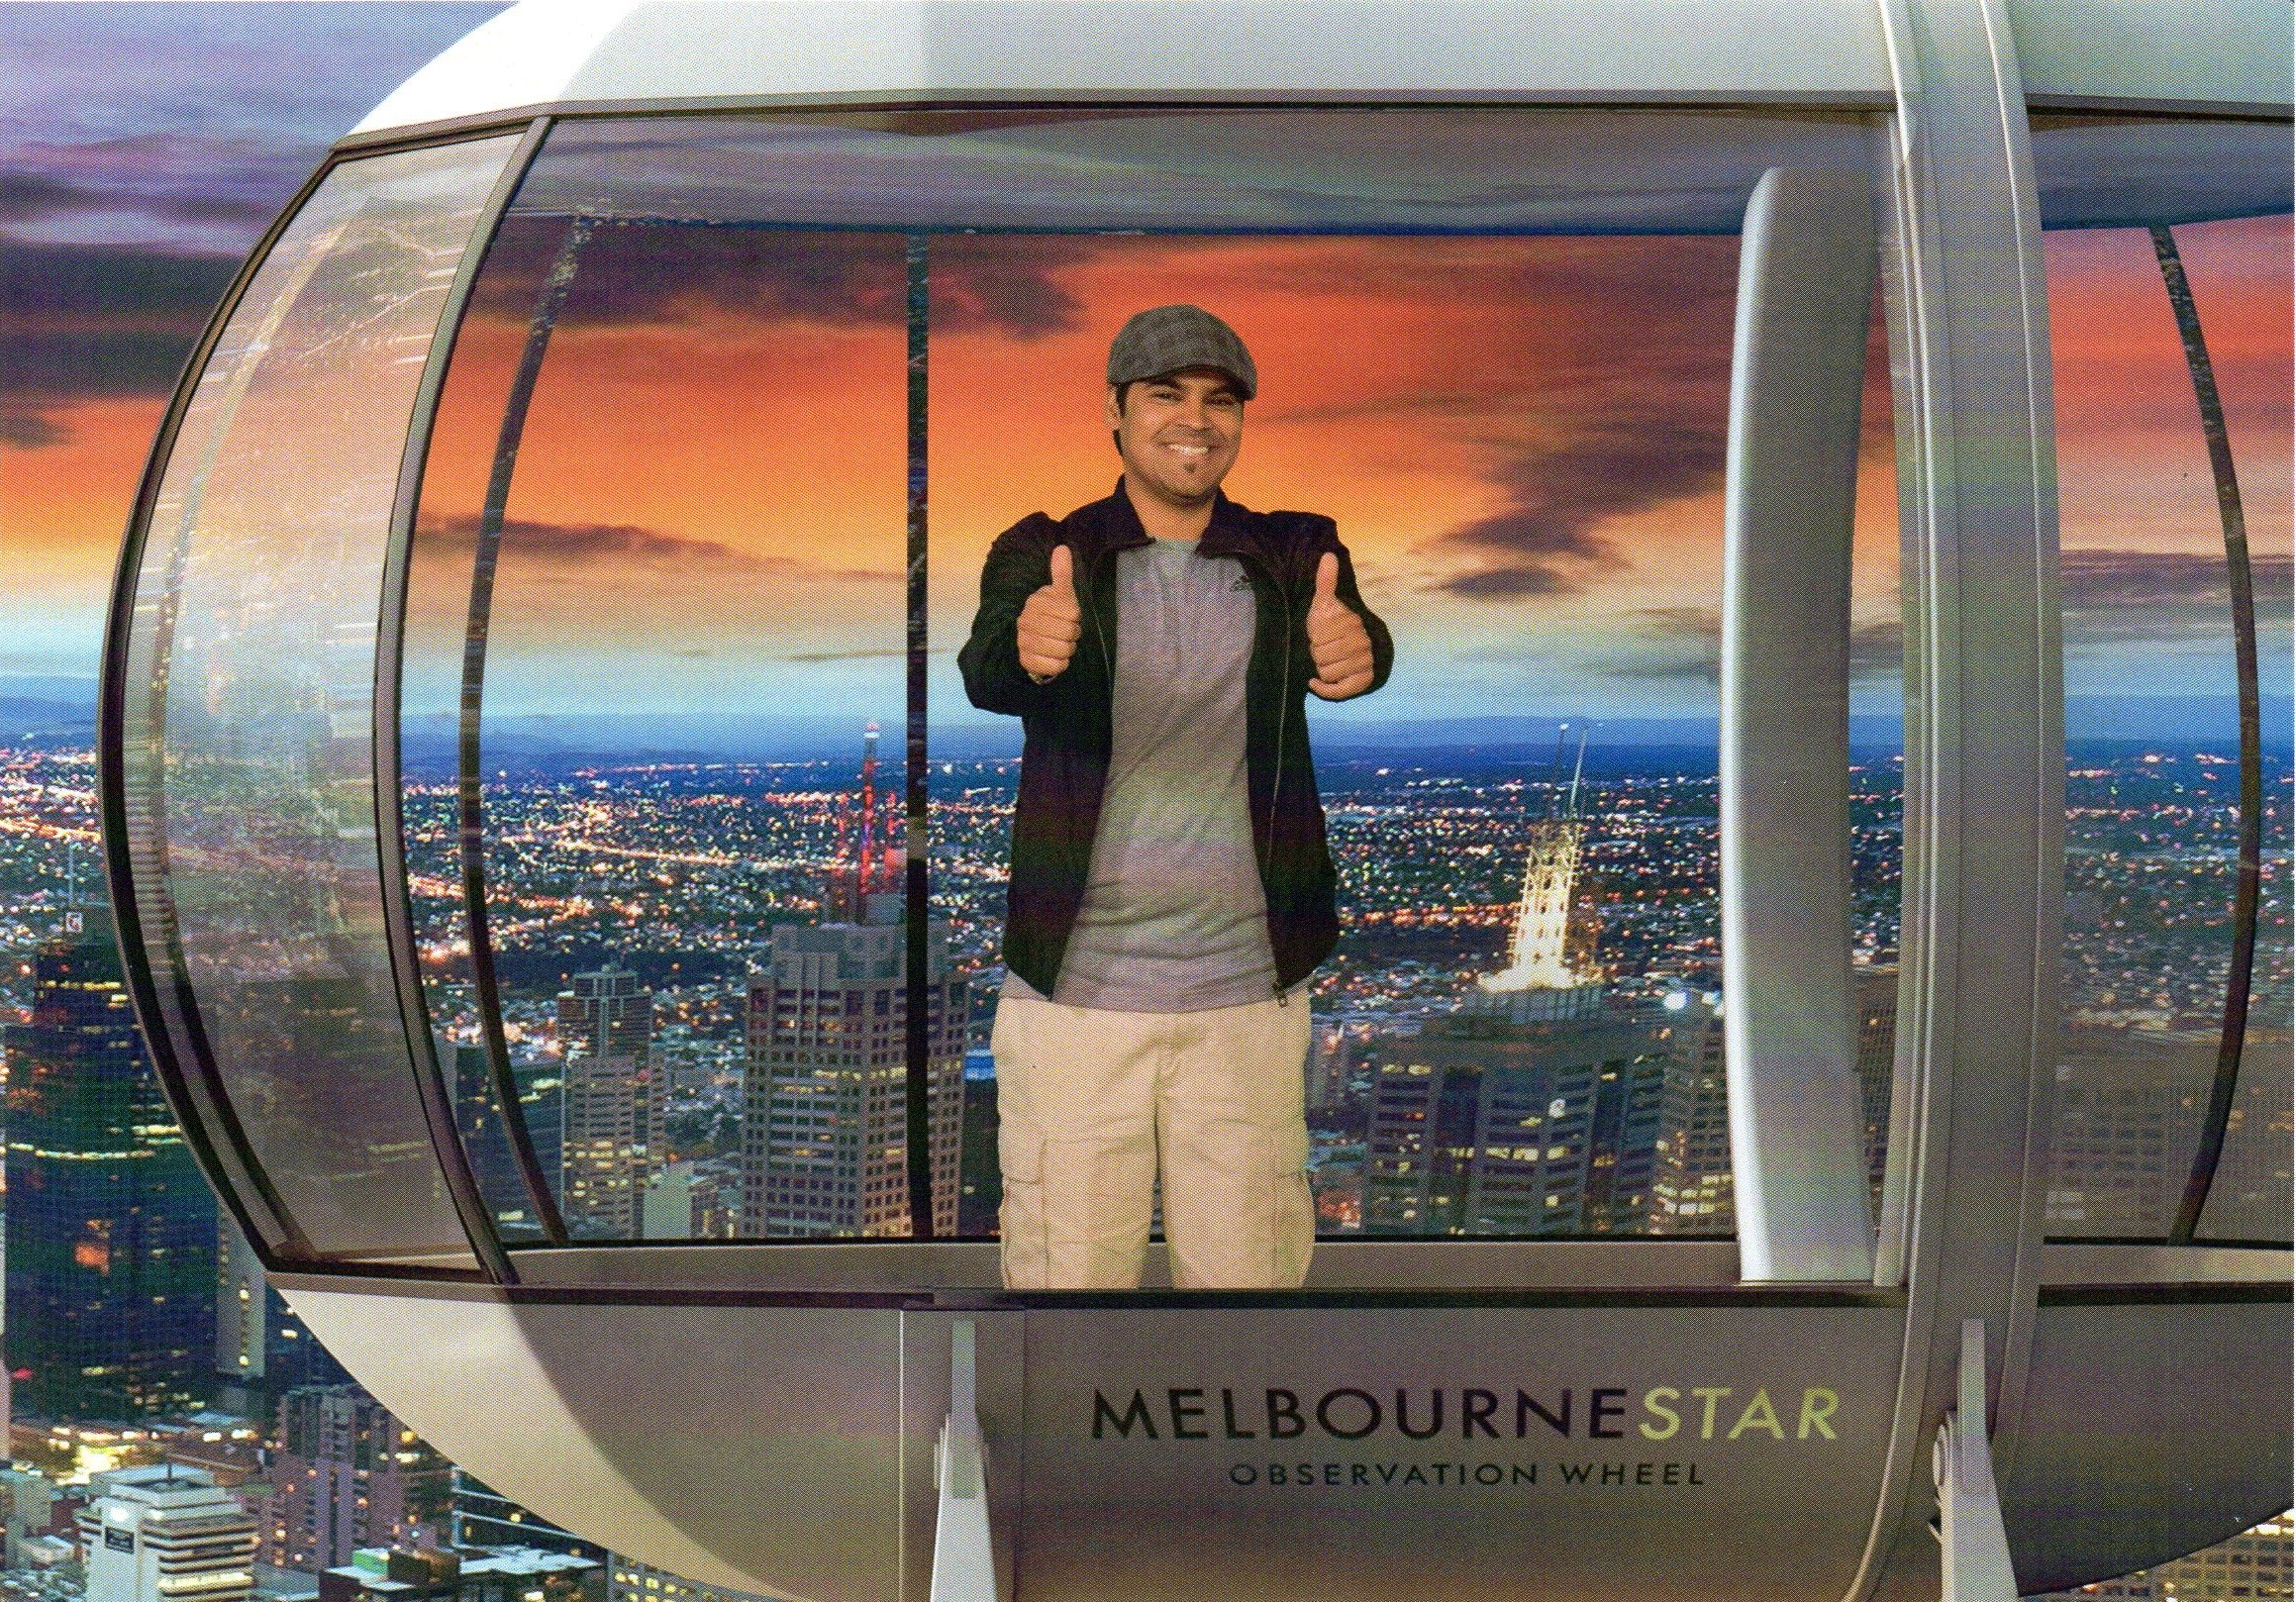 Inside the Melbourne Star